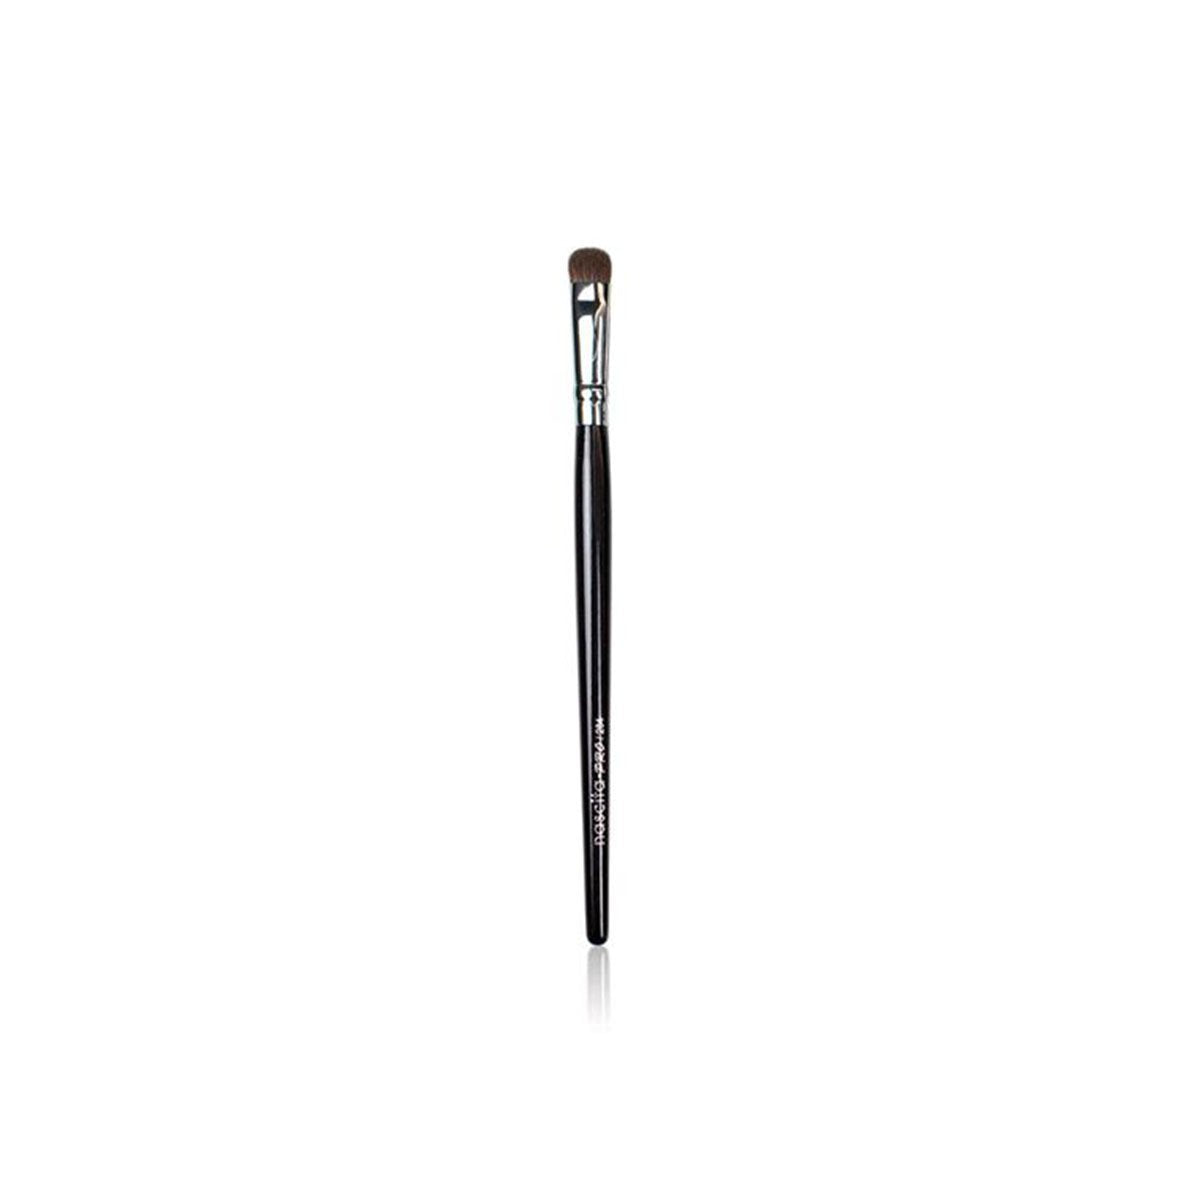 Nascita Do Pro Brush - Blending